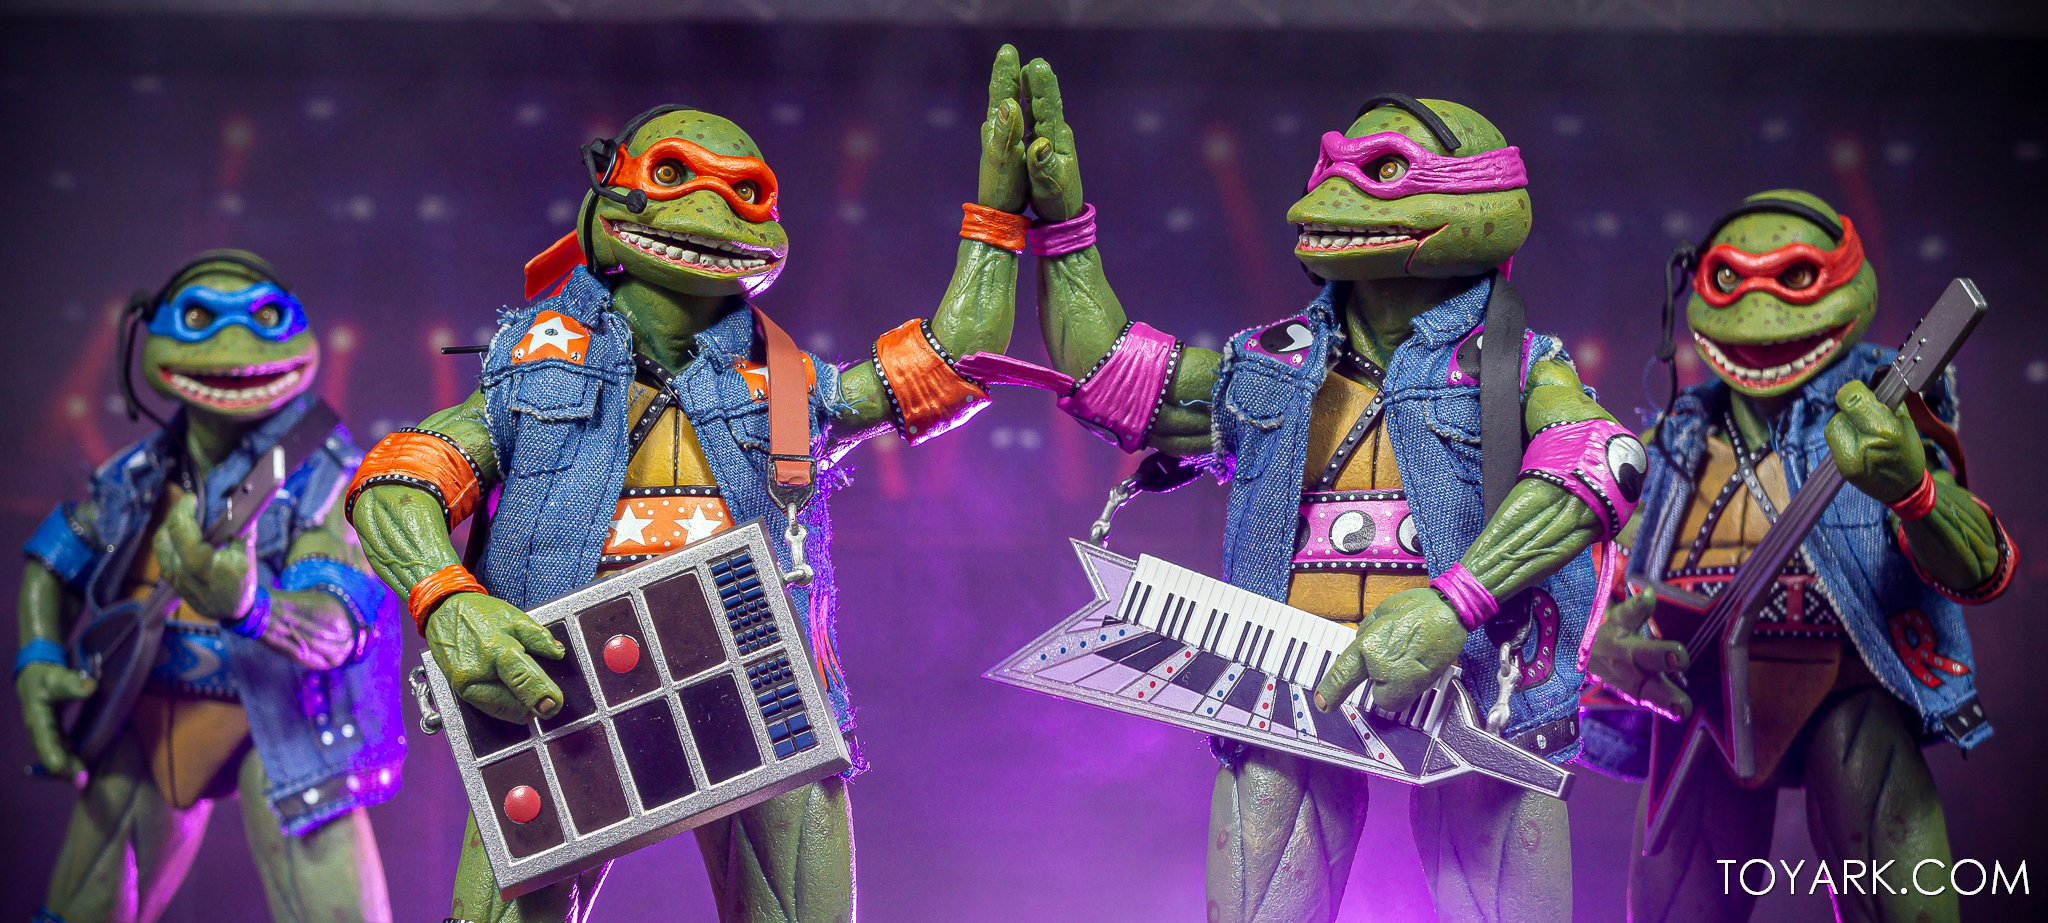 https://news.toyark.com/wp-content/uploads/sites/4/2020/07/SDCC-2020-TMNT-Musical-Mutagen-Tour-074.jpg